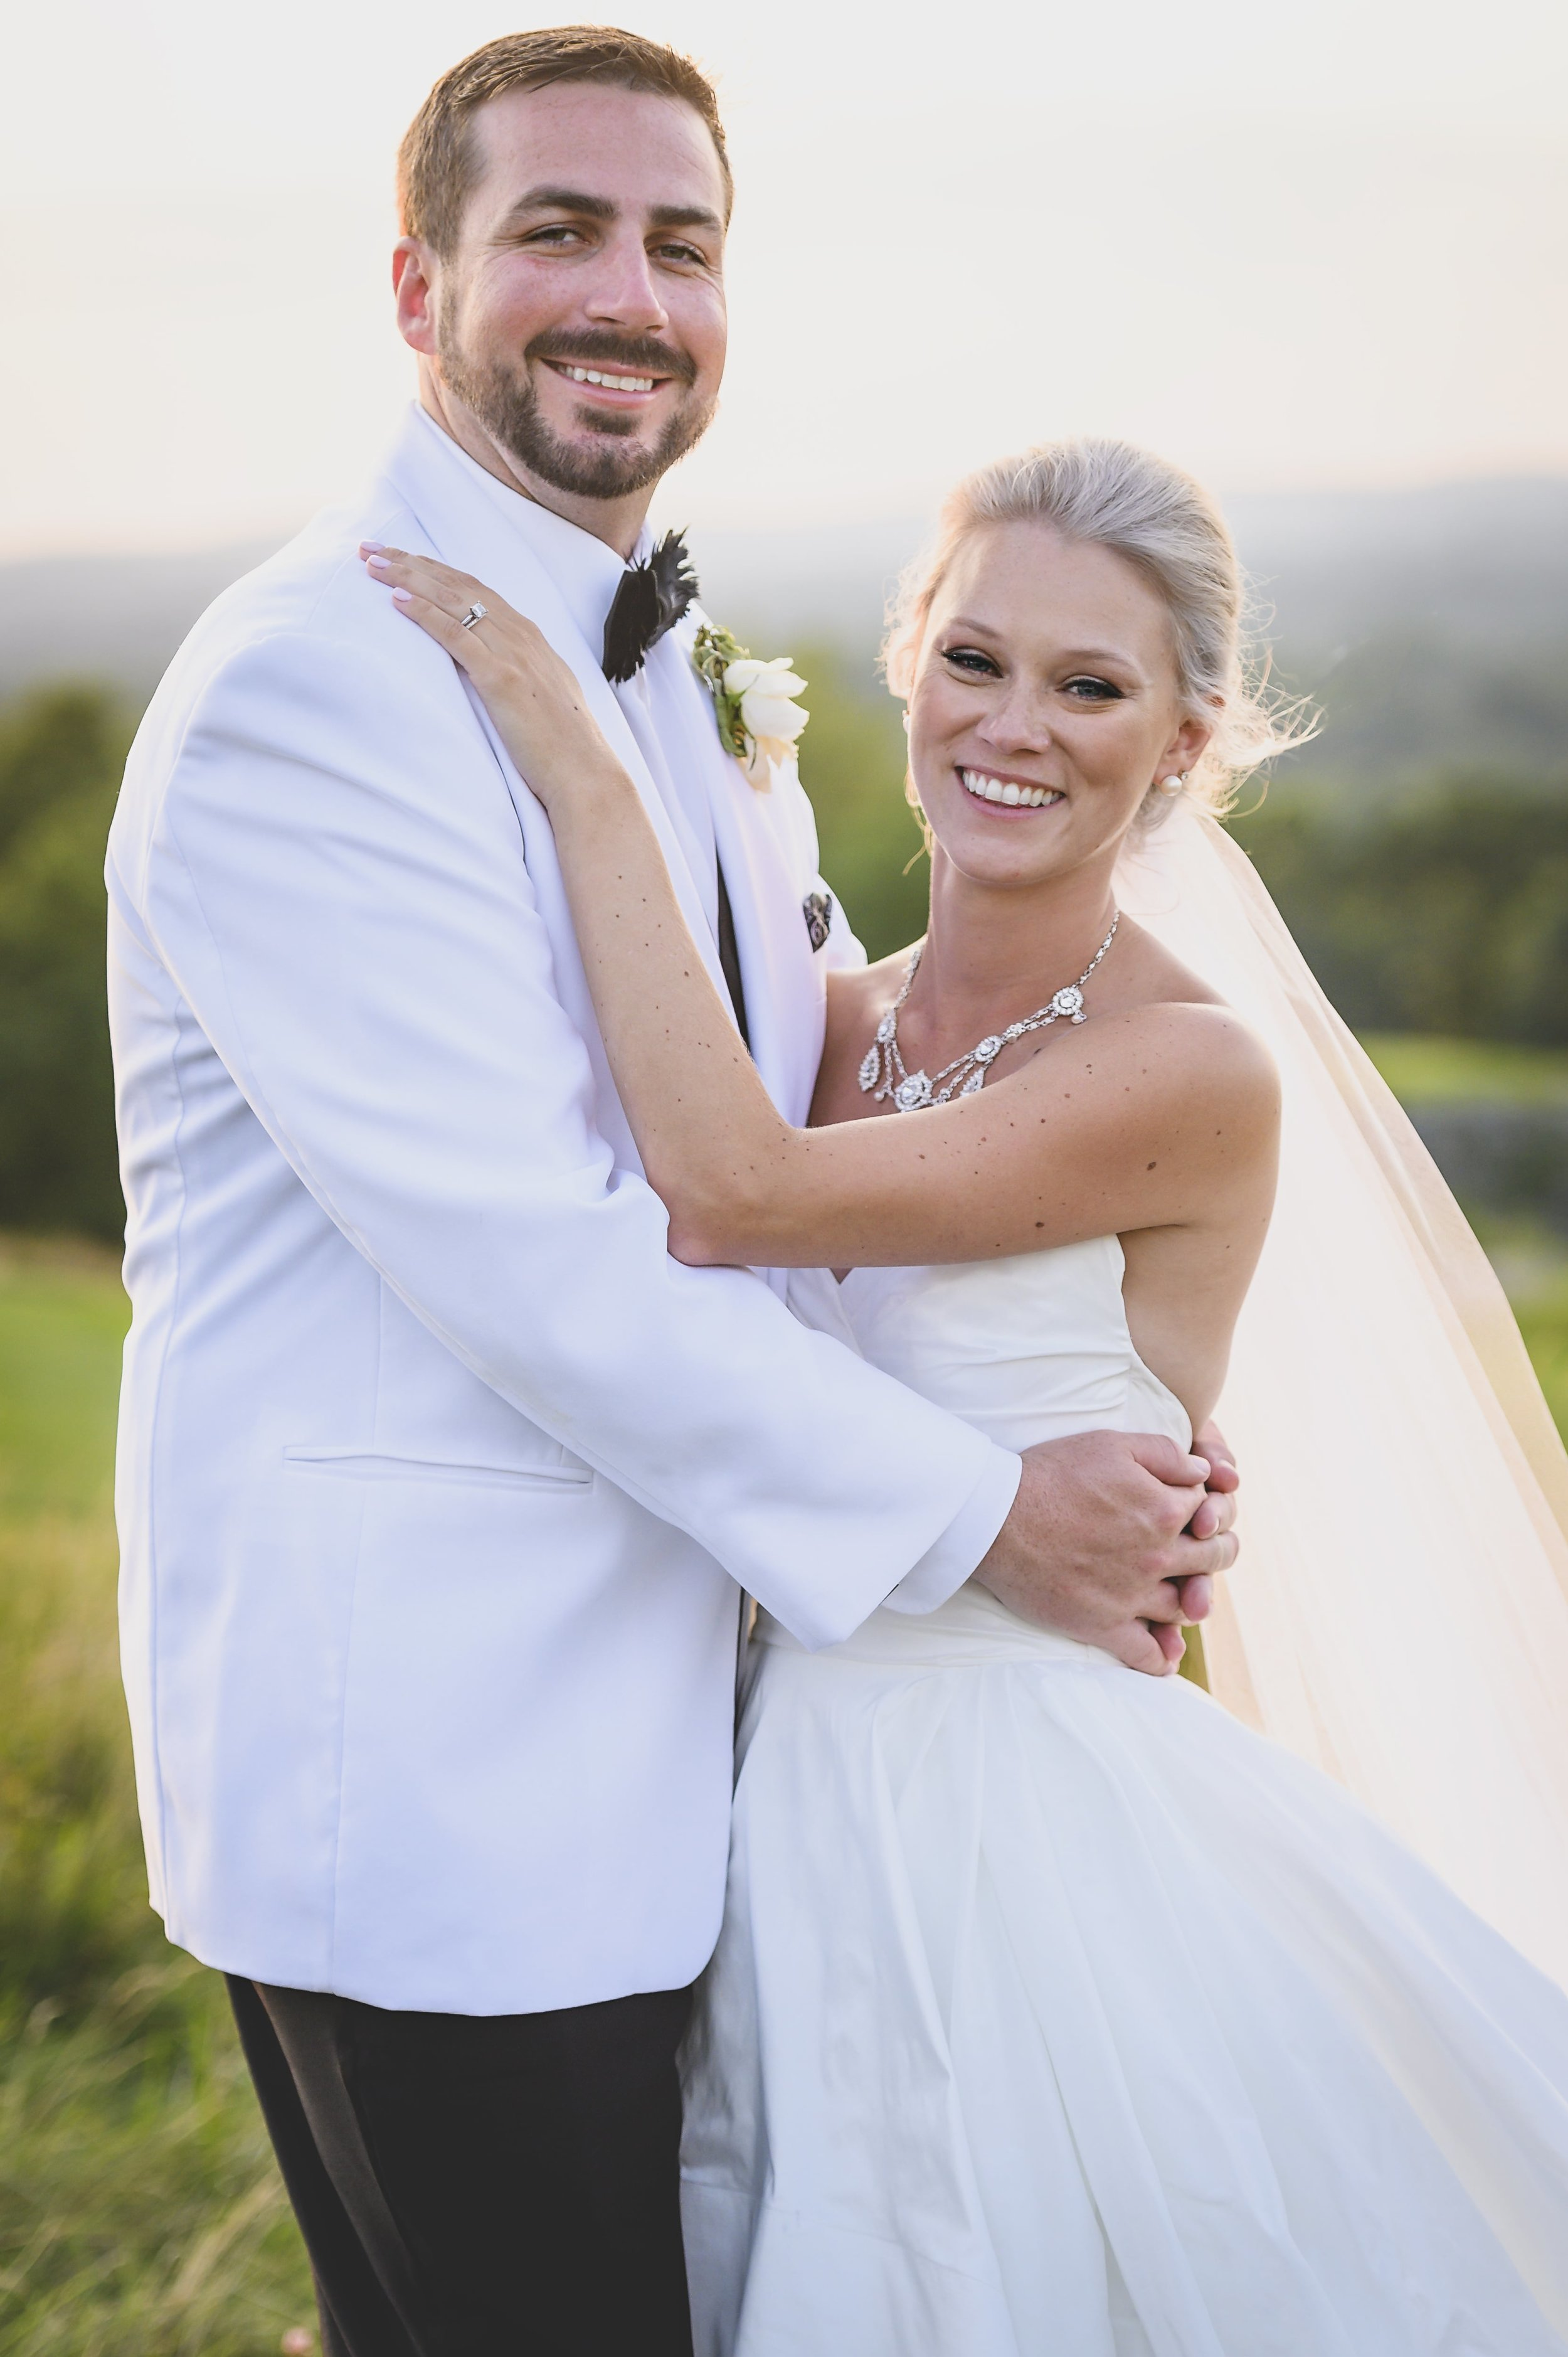 A smiling bride and groom in white.